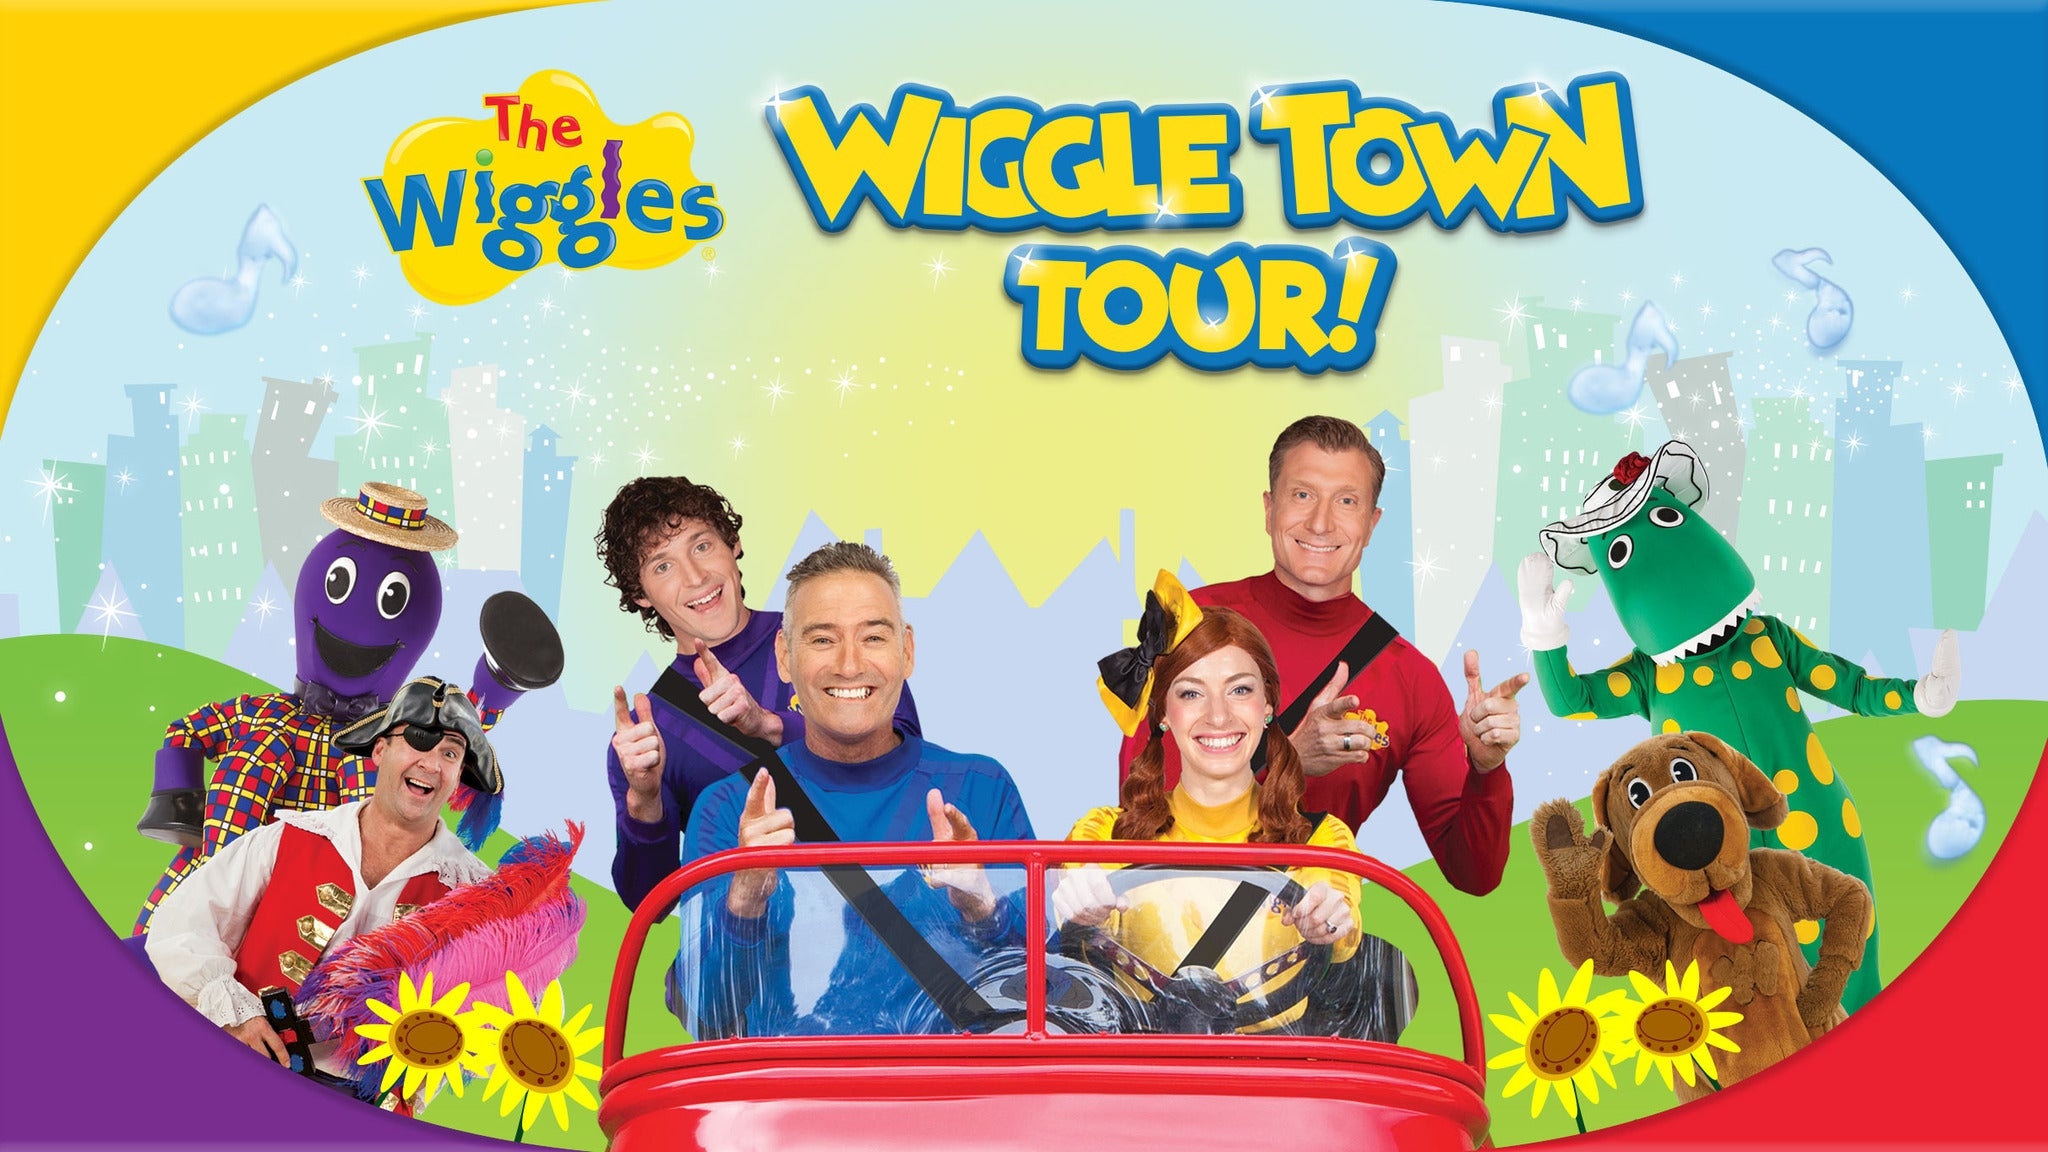 The Wiggles at Tower Theatre